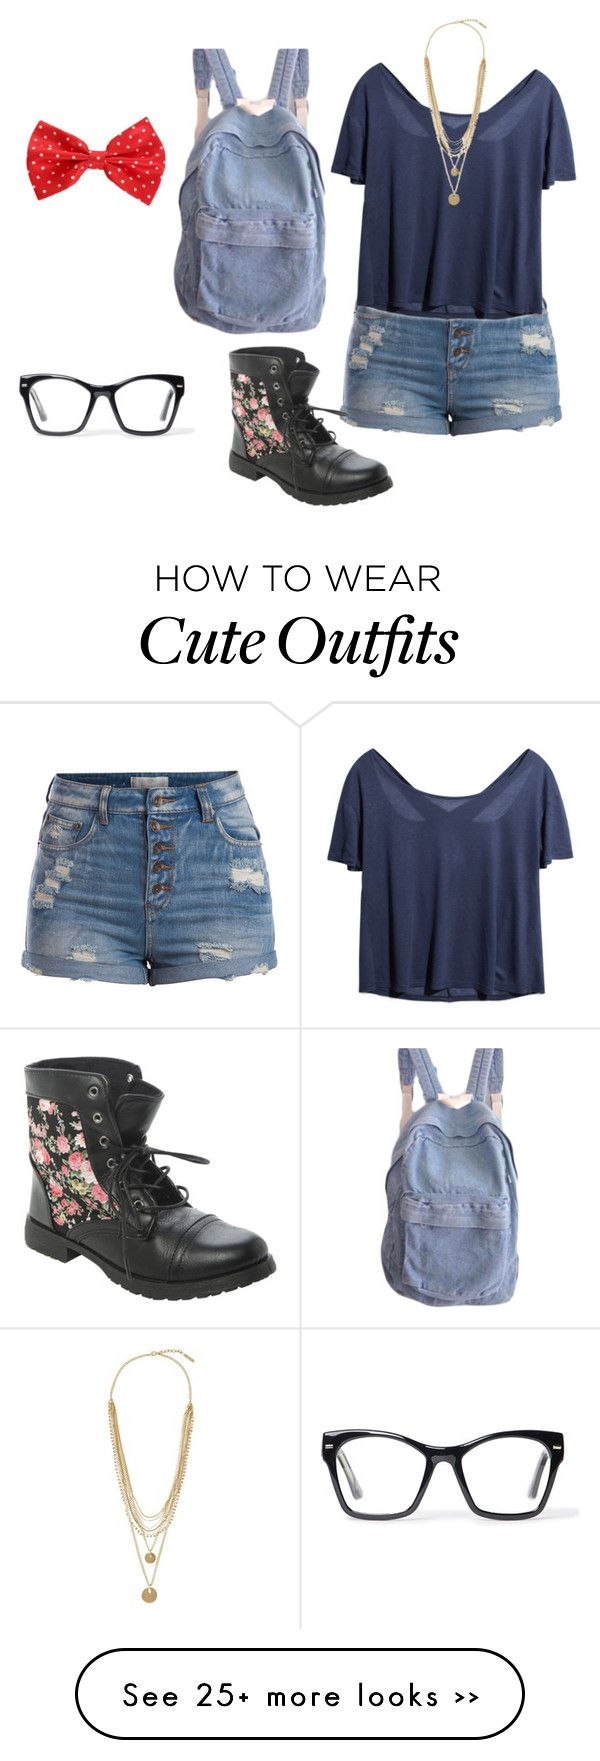 """""""Cute outfit idea ❤️"""" by lollidancdr on Polyvore"""